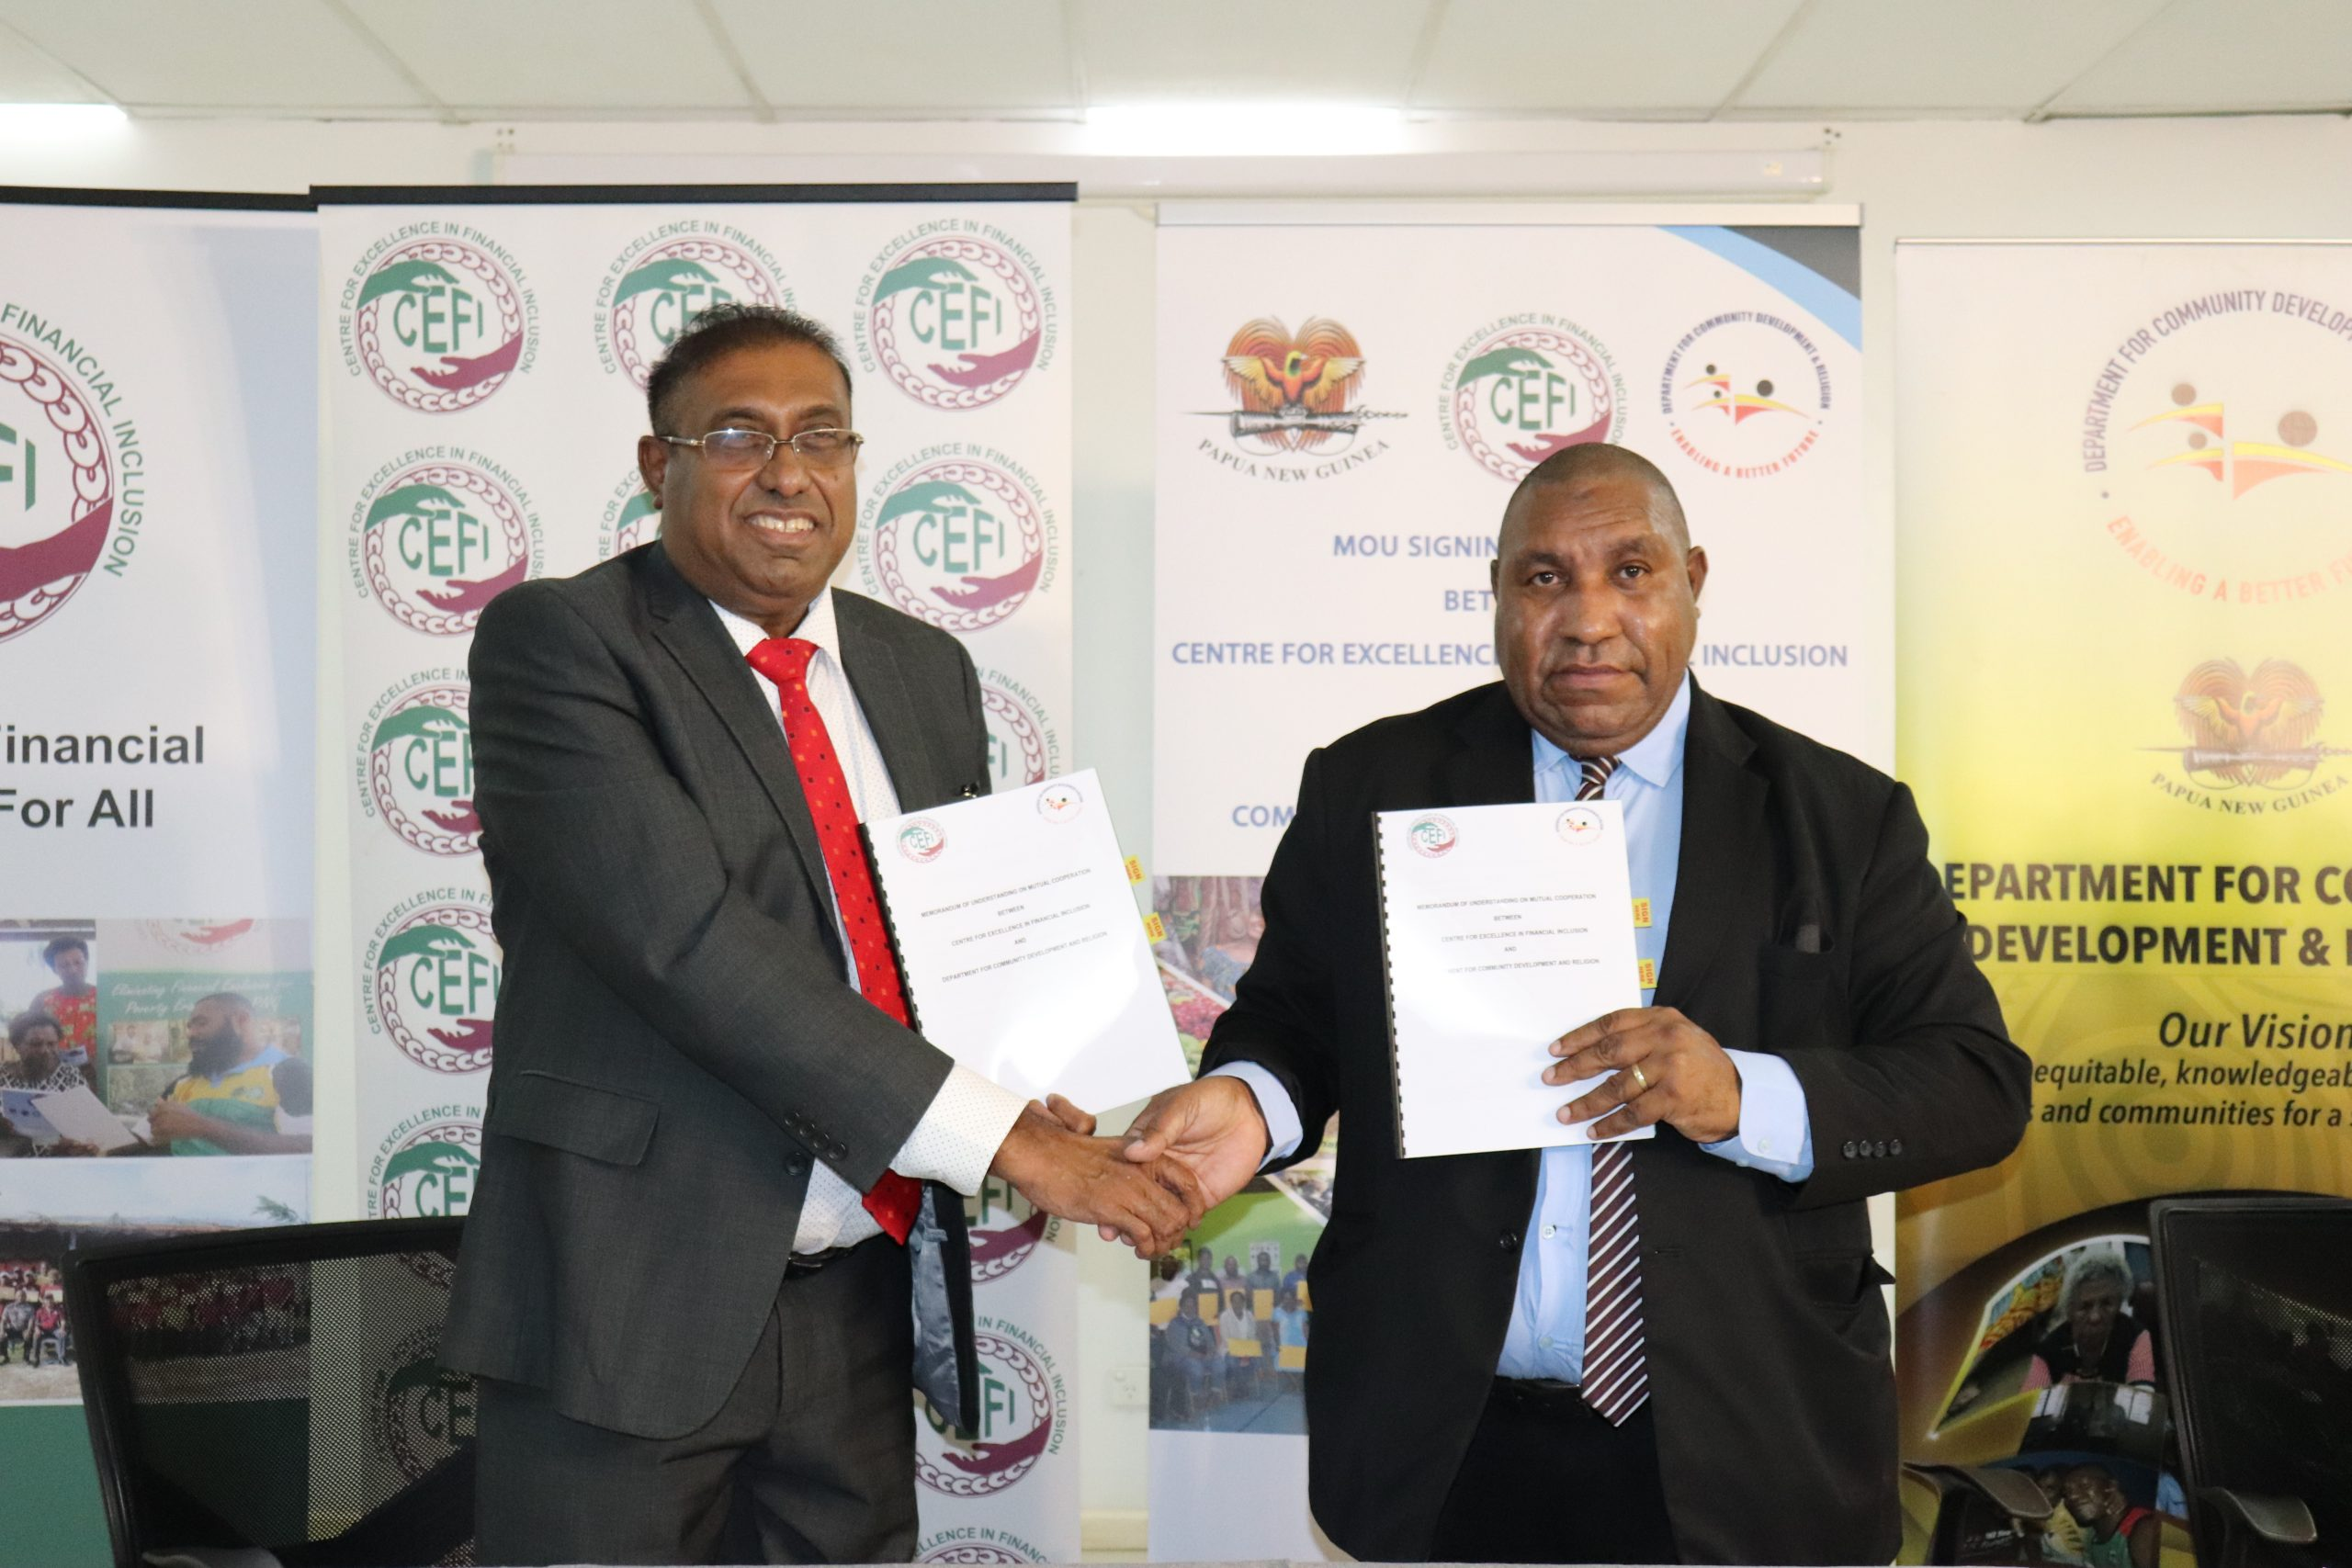 Acting Department Secretary, Mr Jerry Ubase and Executive Director for CEFI, Mr Saliya Ranasinghe shaking hands following the signing of the MoU.